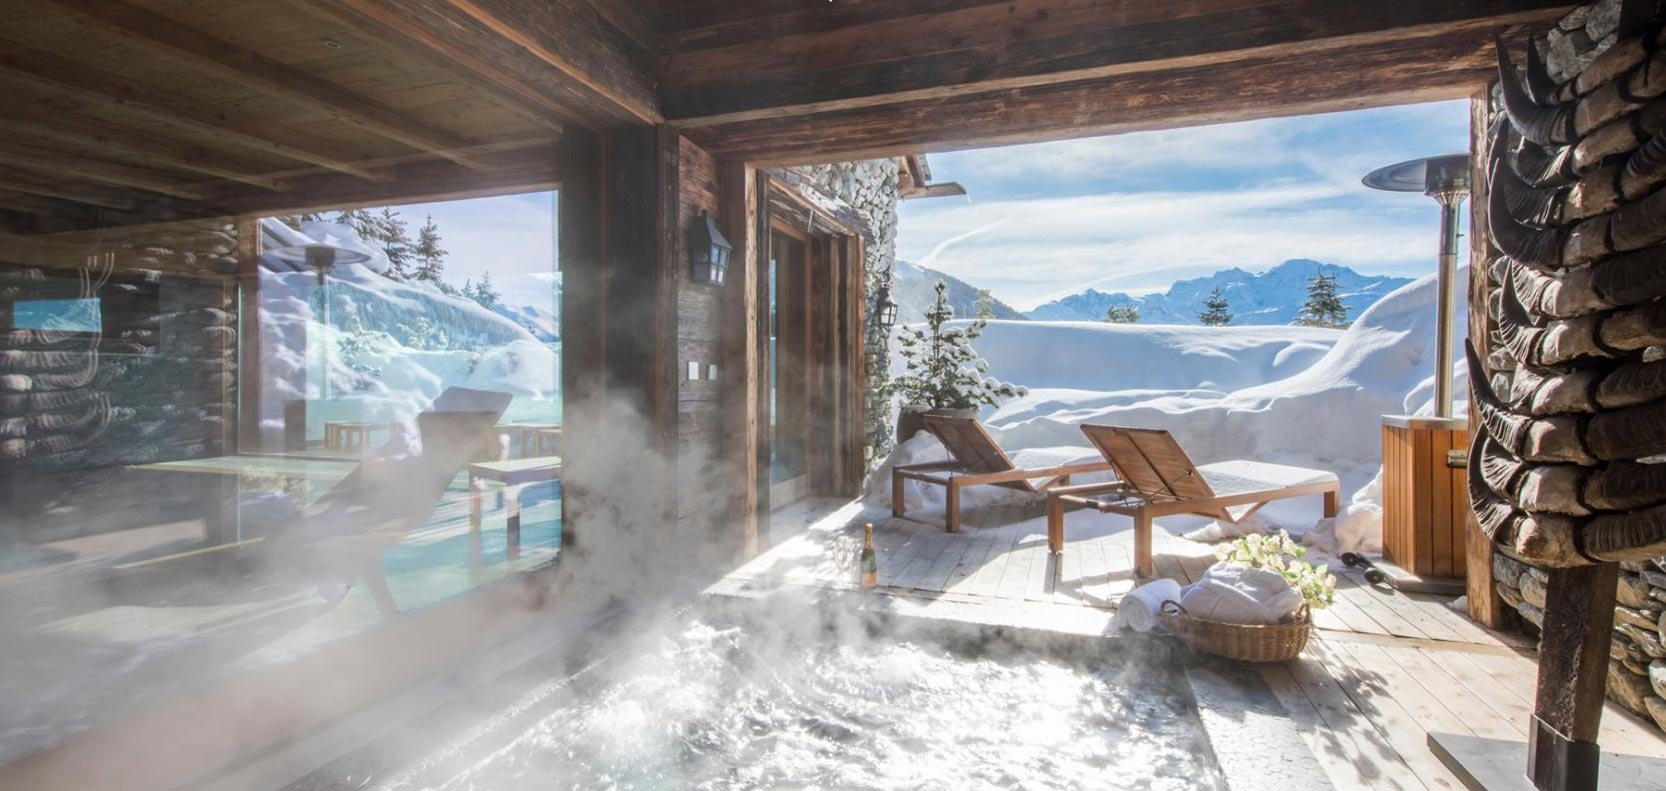 mon_izba_verbier_switzerland_luxury_ski_chalet_hot_tub